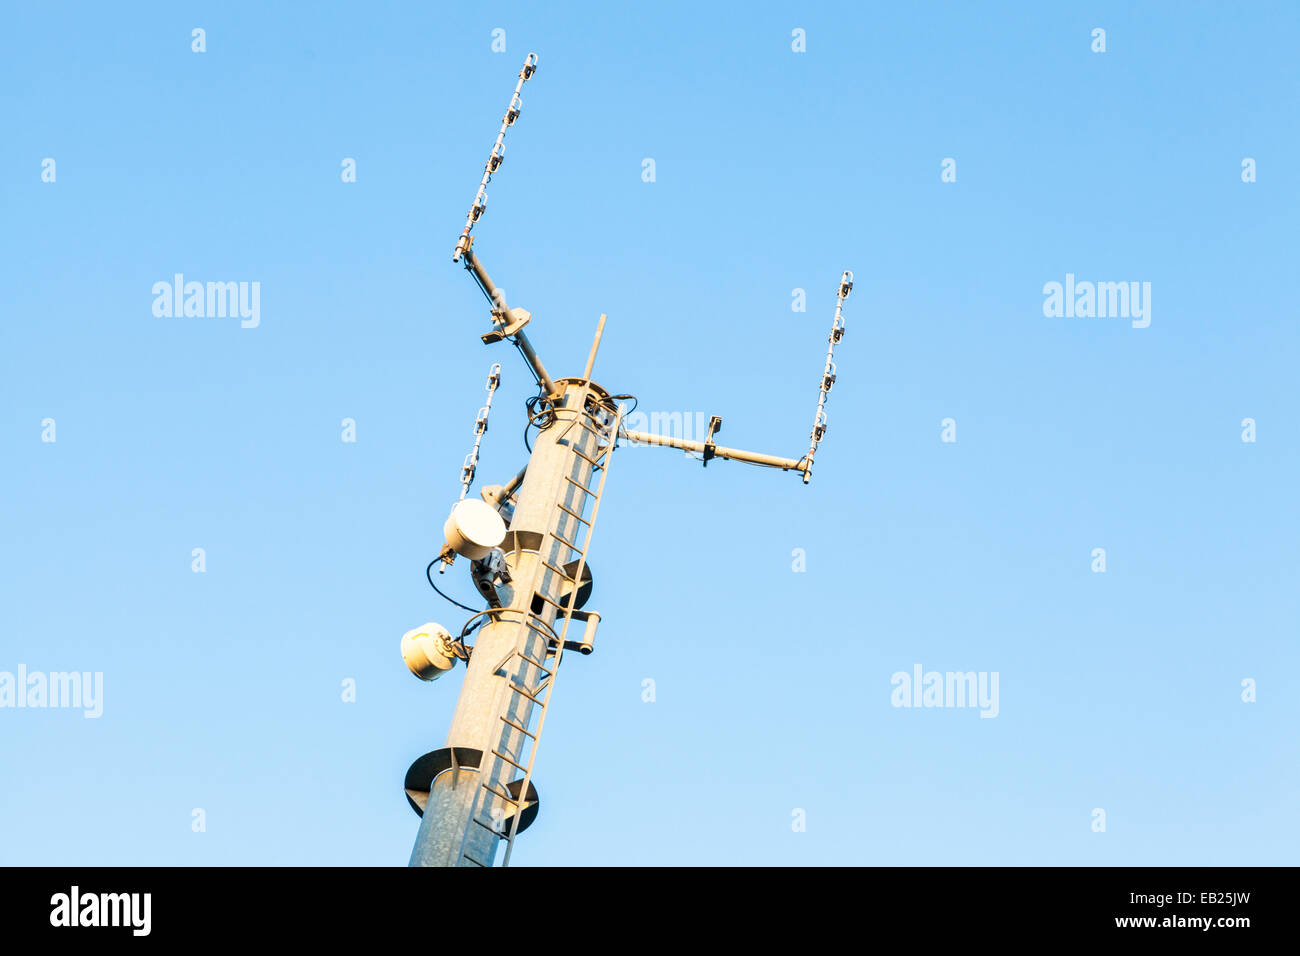 Top of a self supporting telecommunications mast, Nottinghamshire, England, UK - Stock Image